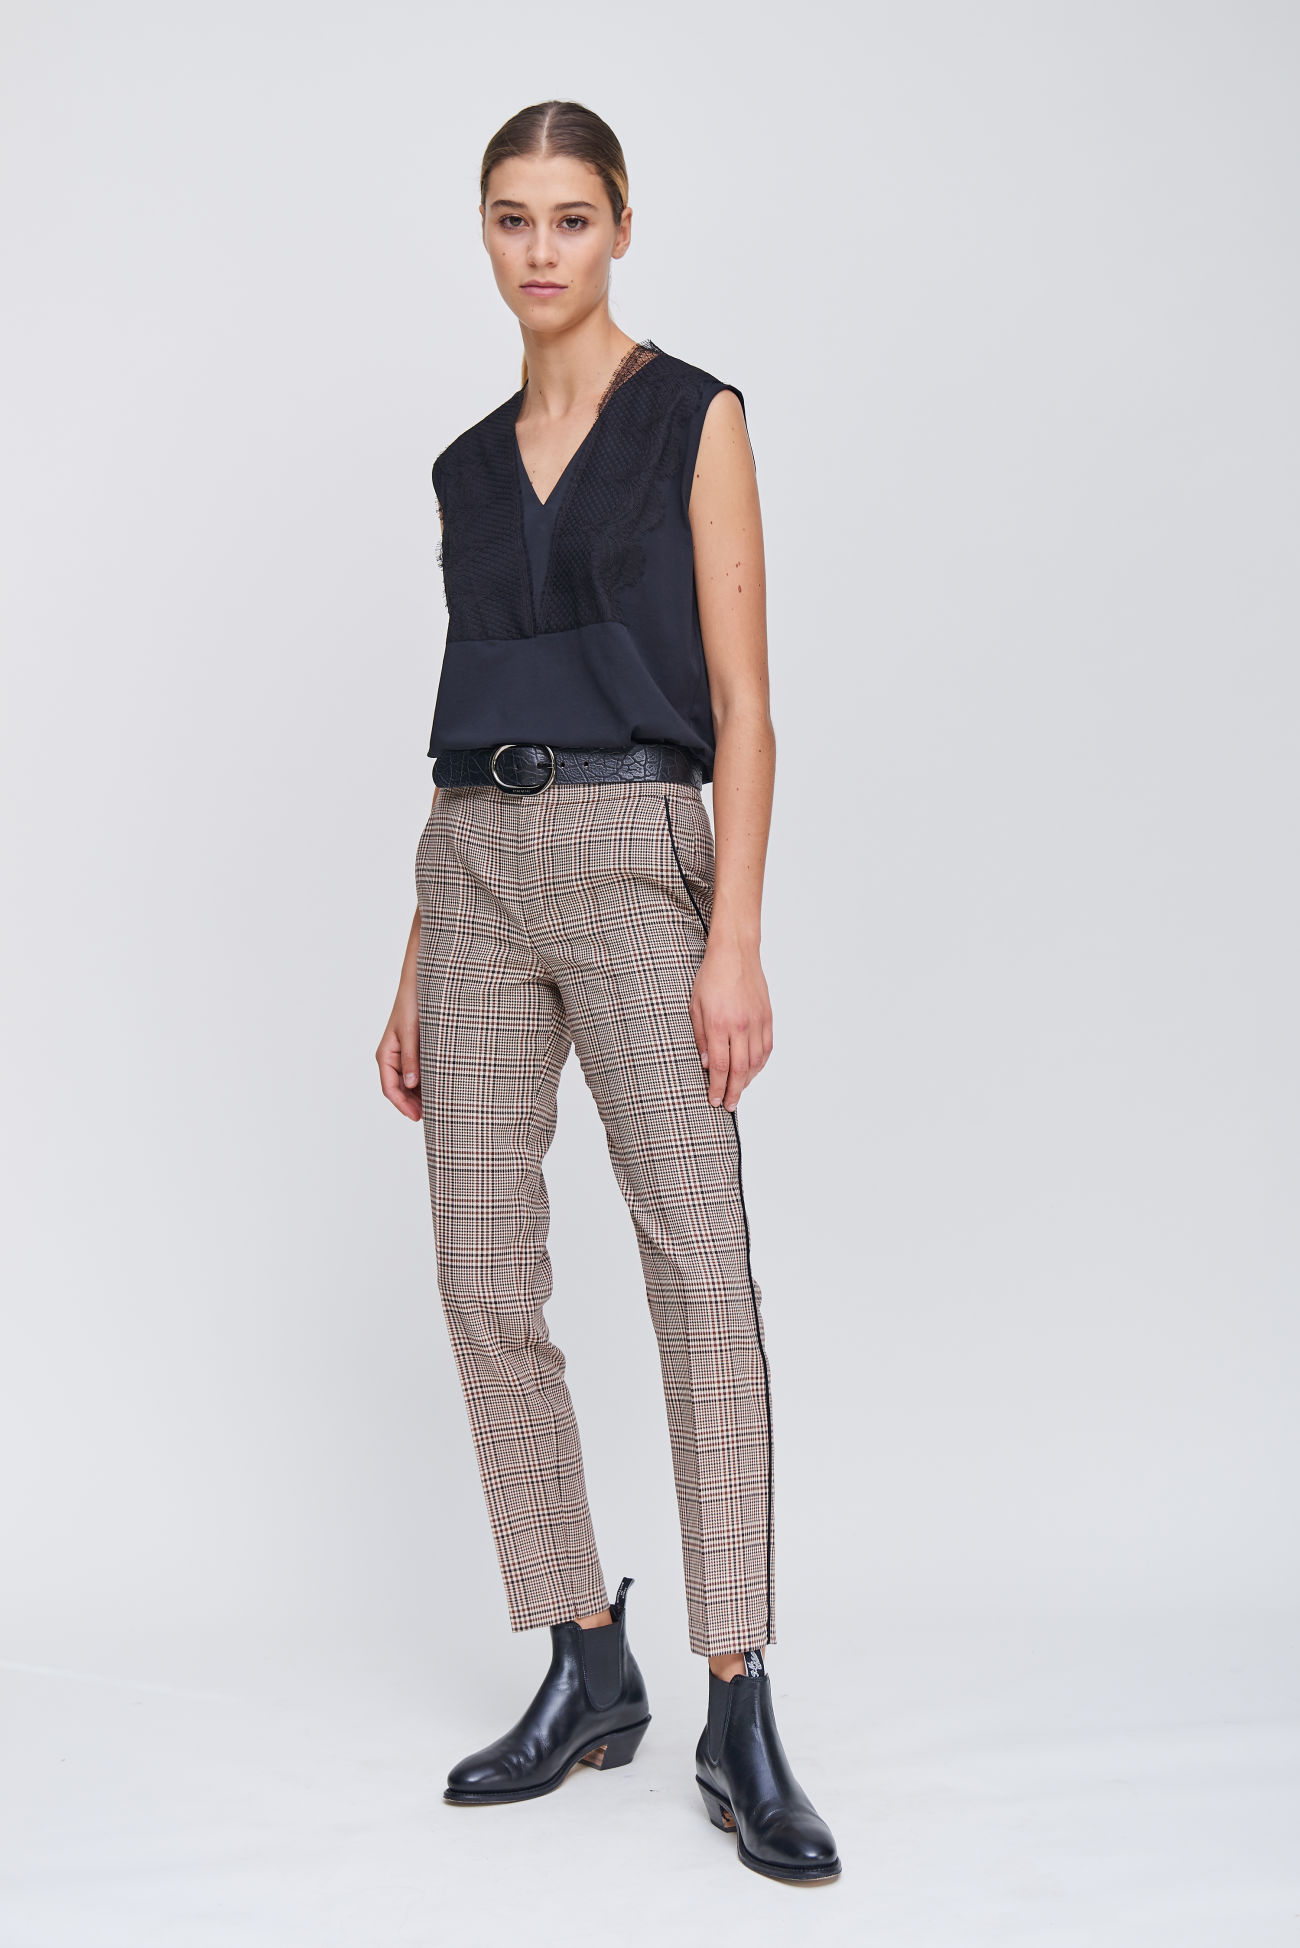 Glencheck trousers